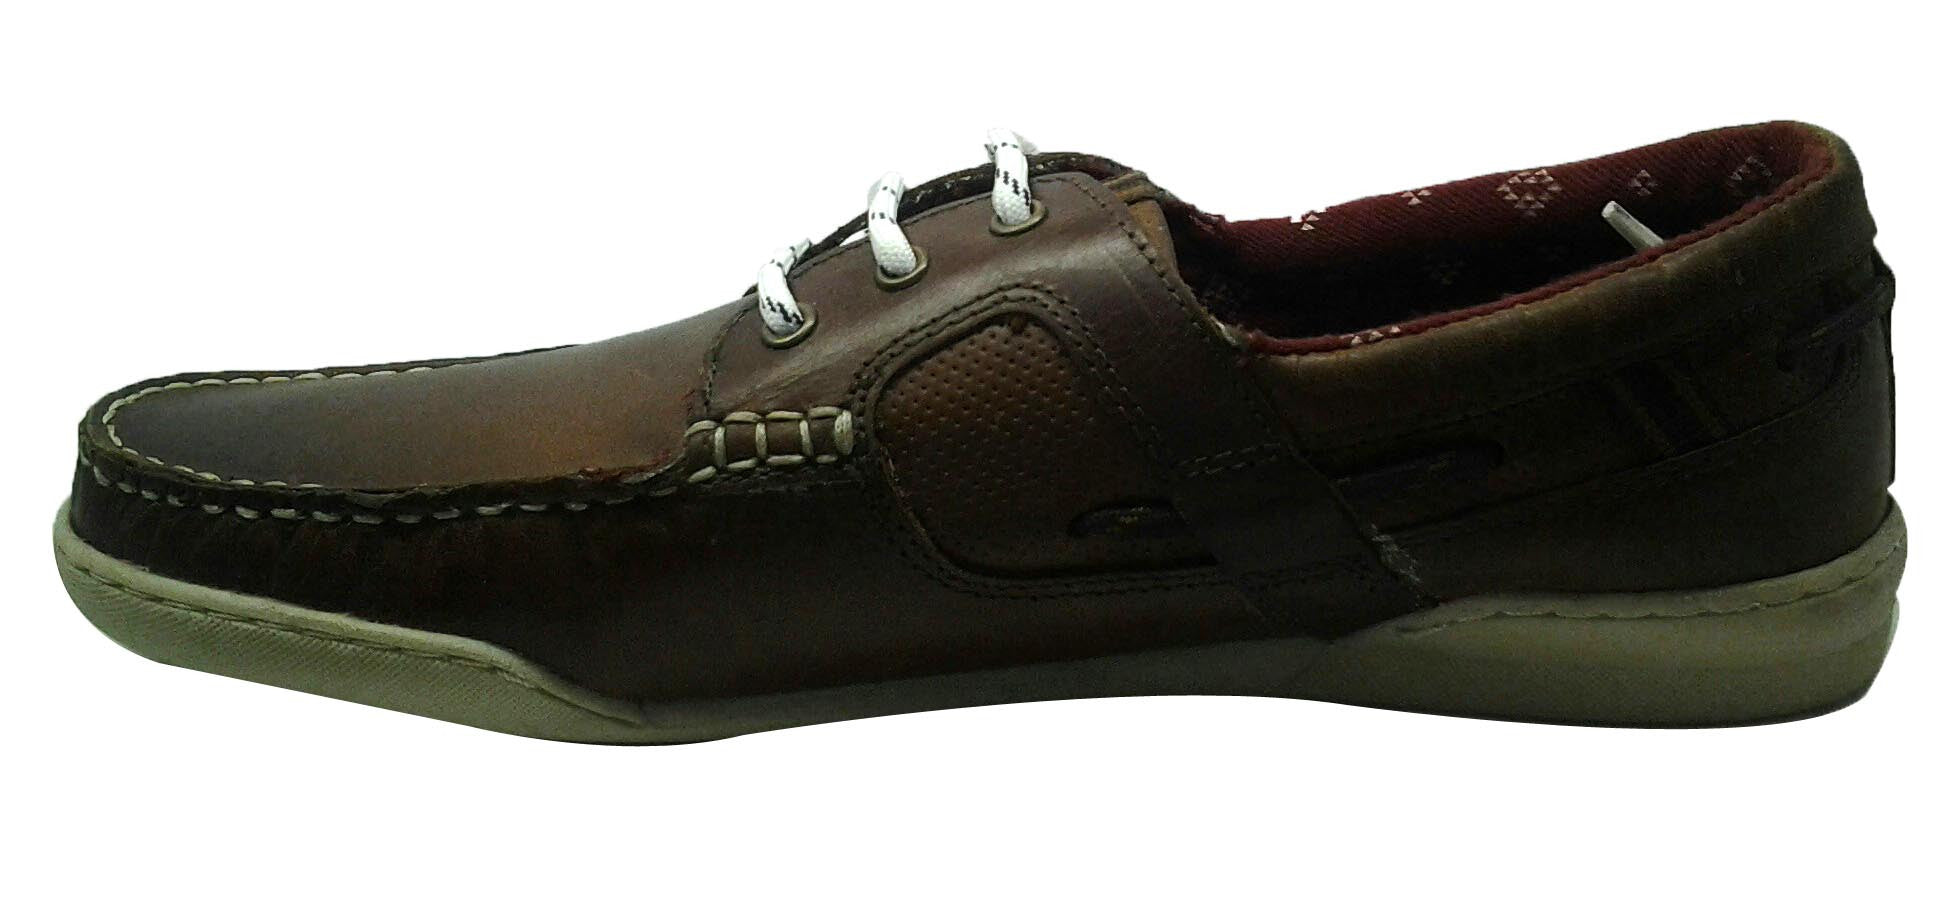 Goyalsons Shoes Rts8202